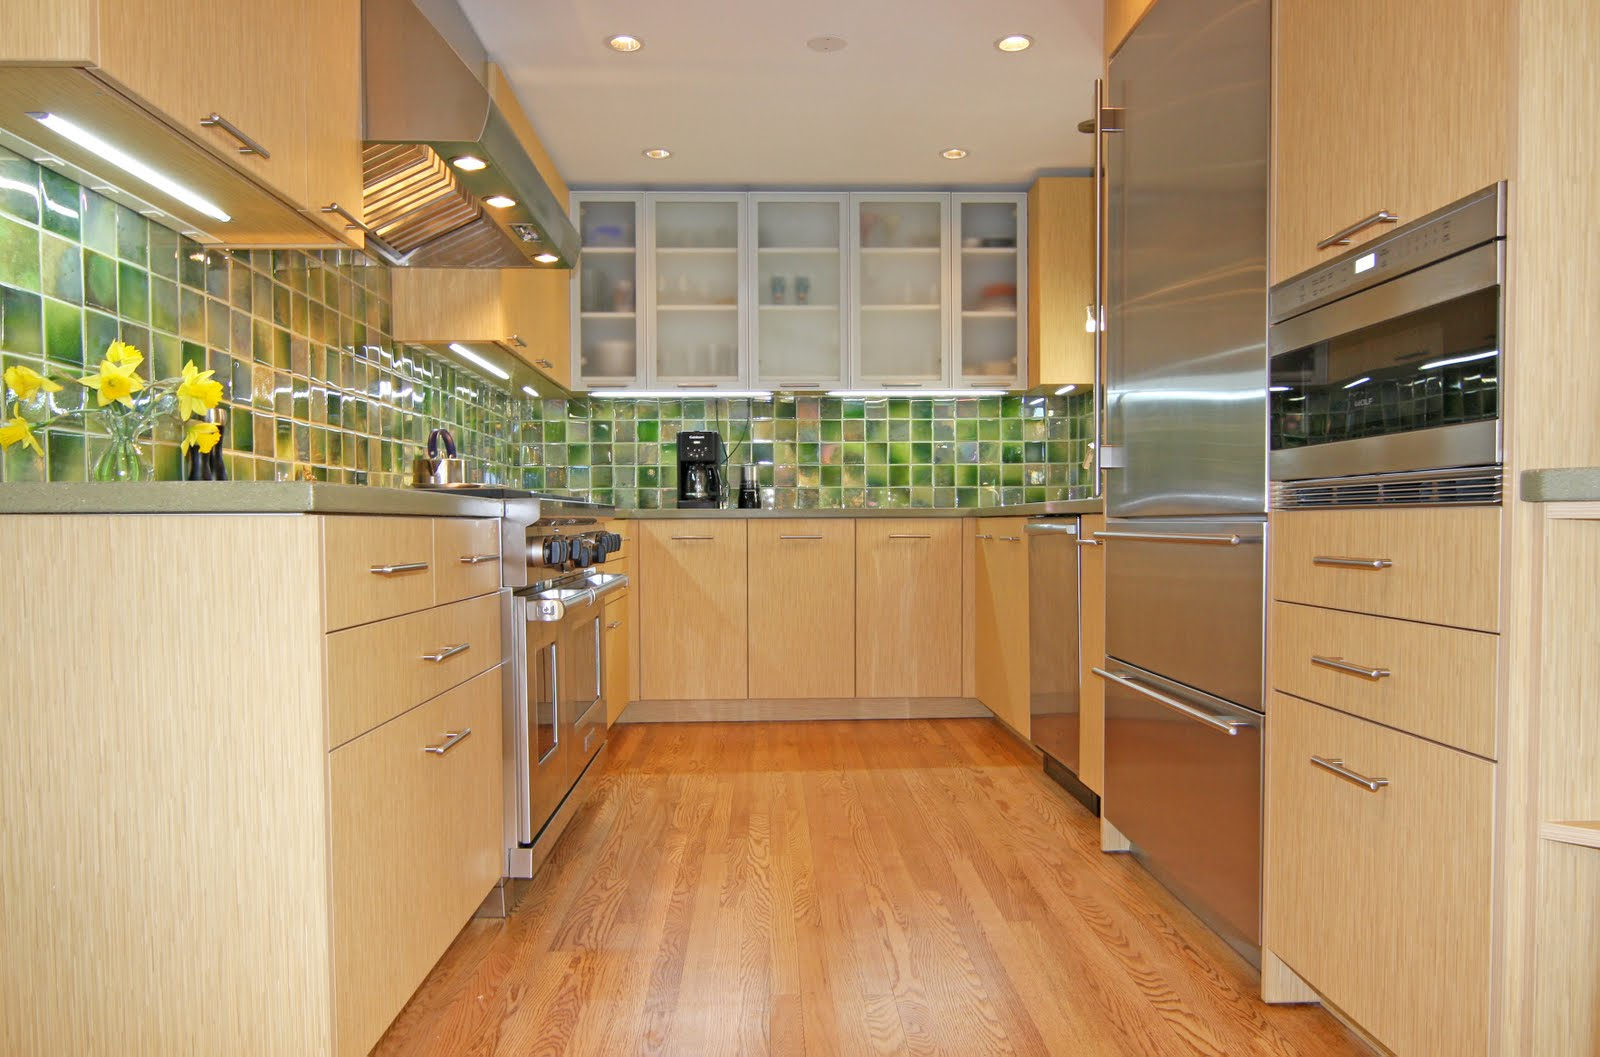 Galley Kitchen Remodeling Can Be A Great Way To Take A Kitchen Space